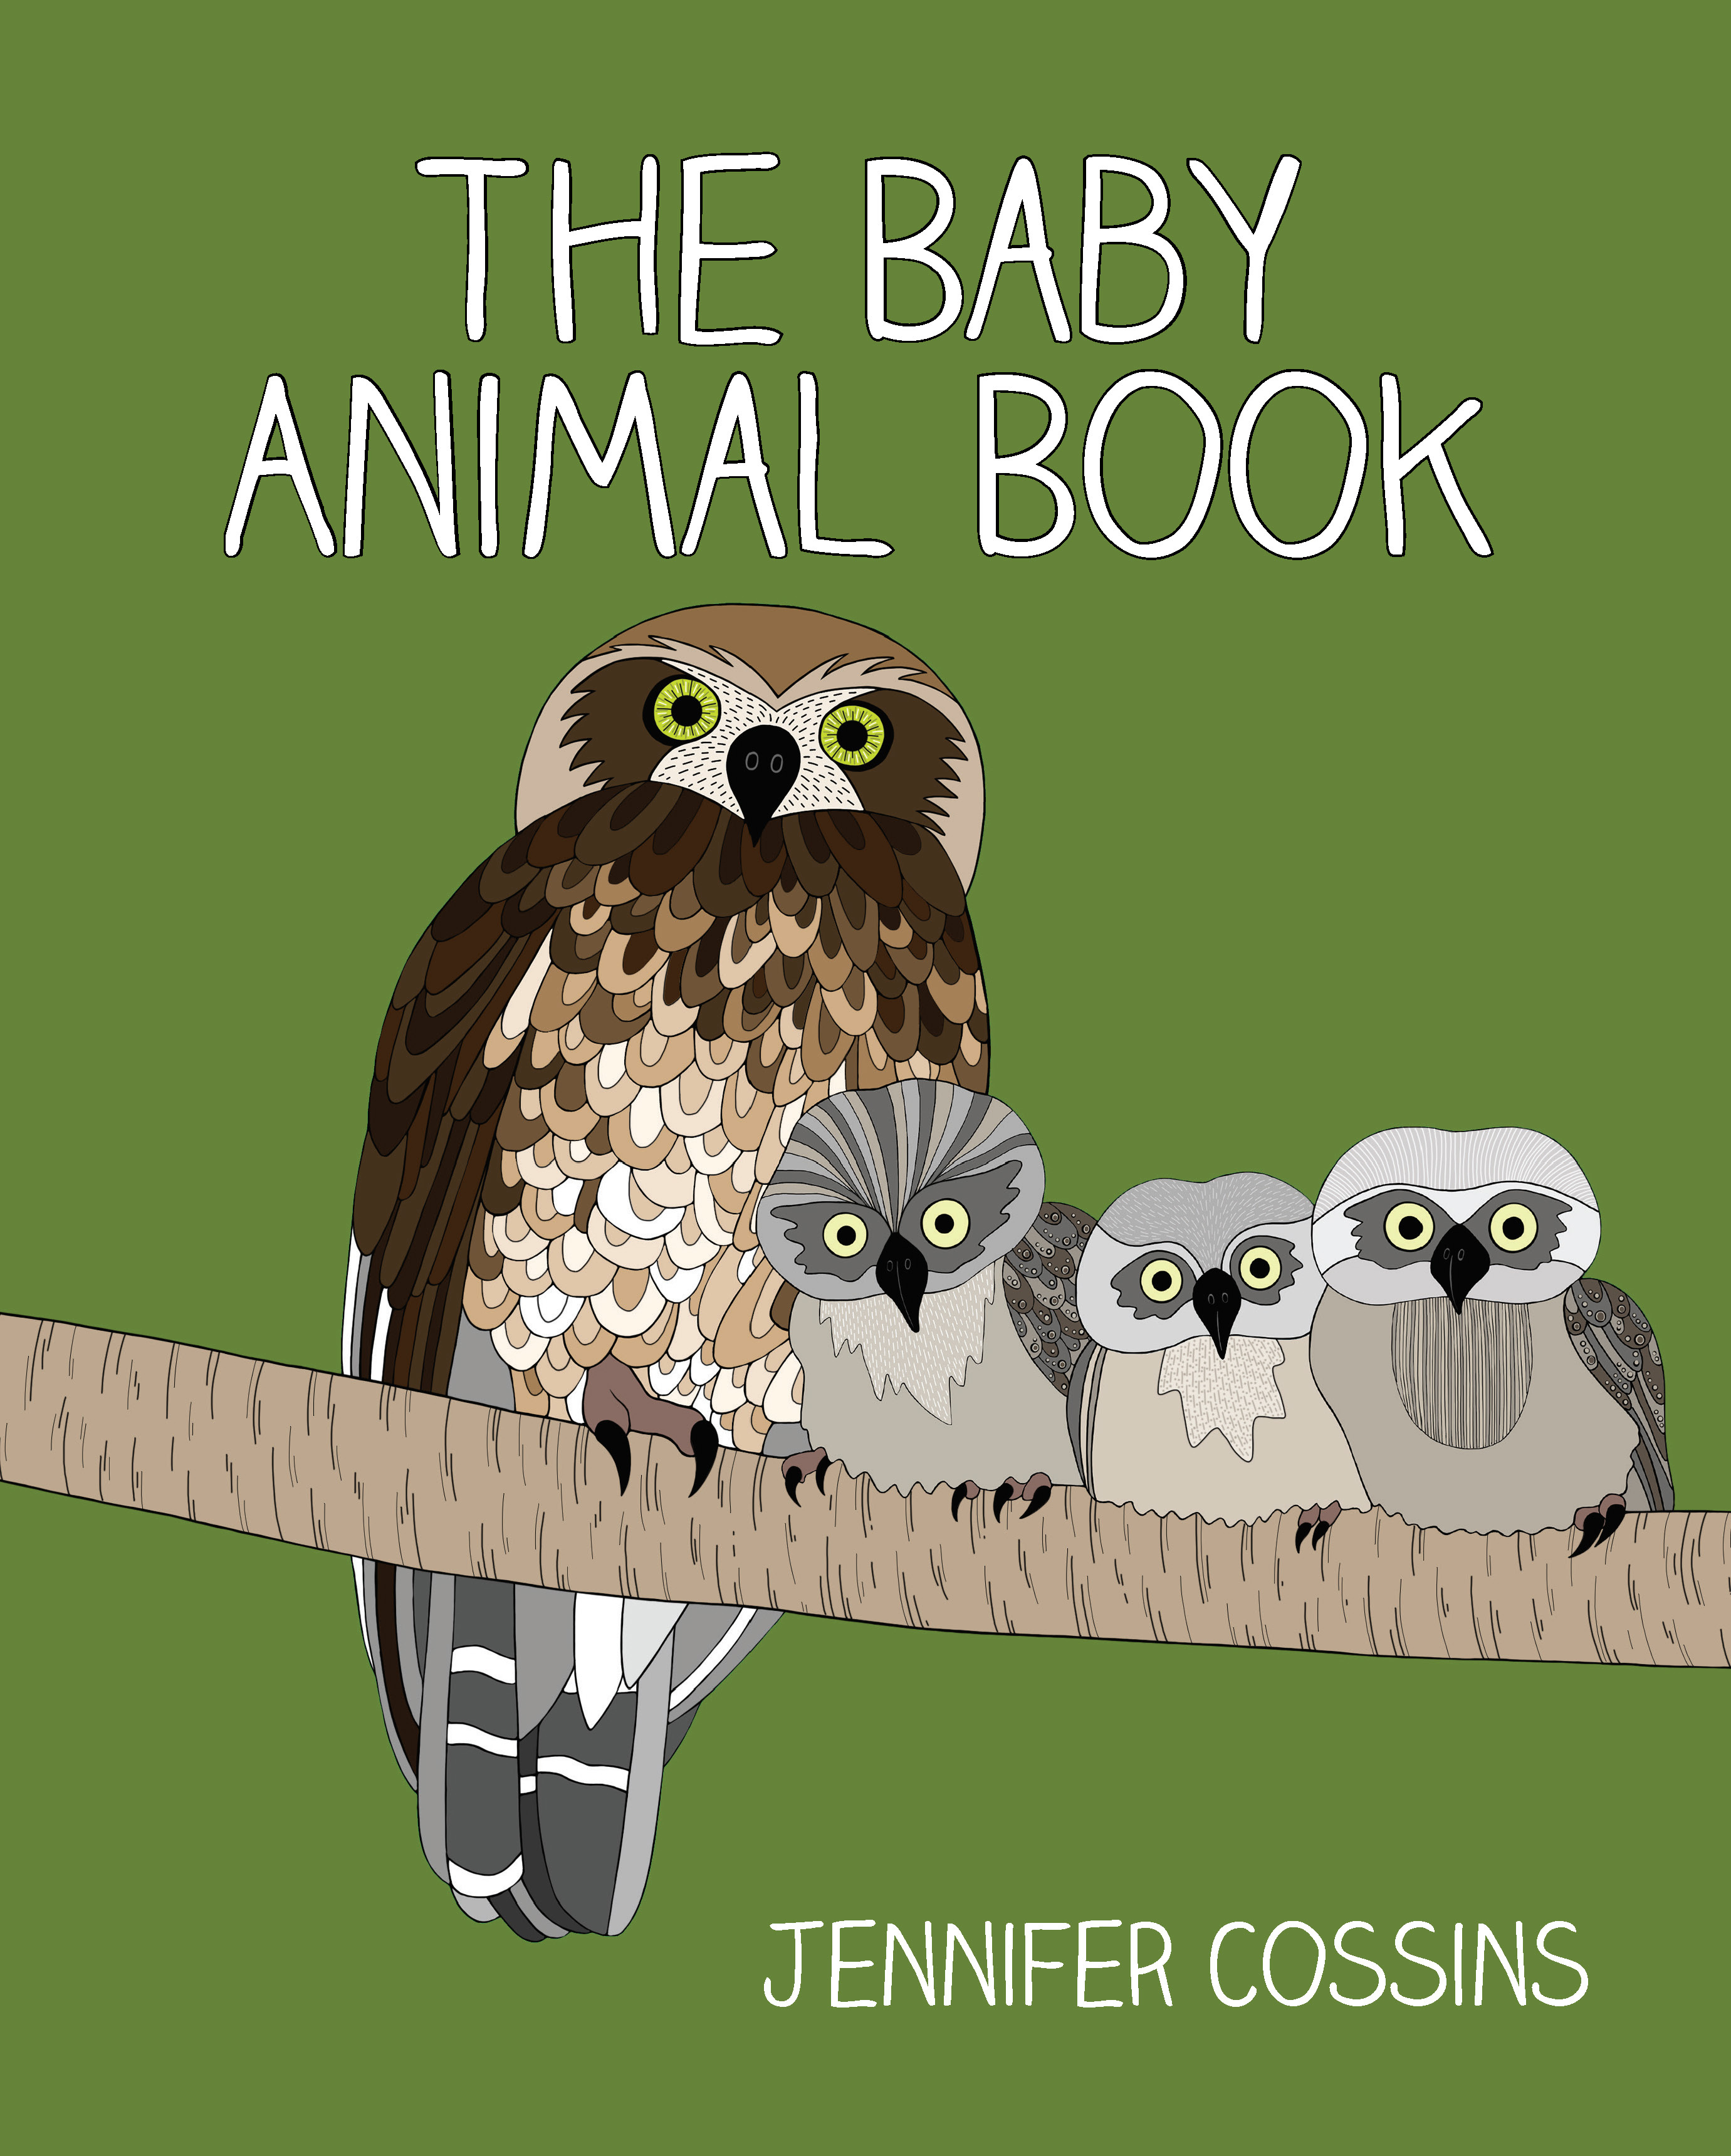 The Baby Animal Book by Jennifer Cossins, ISBN: 9780734418166